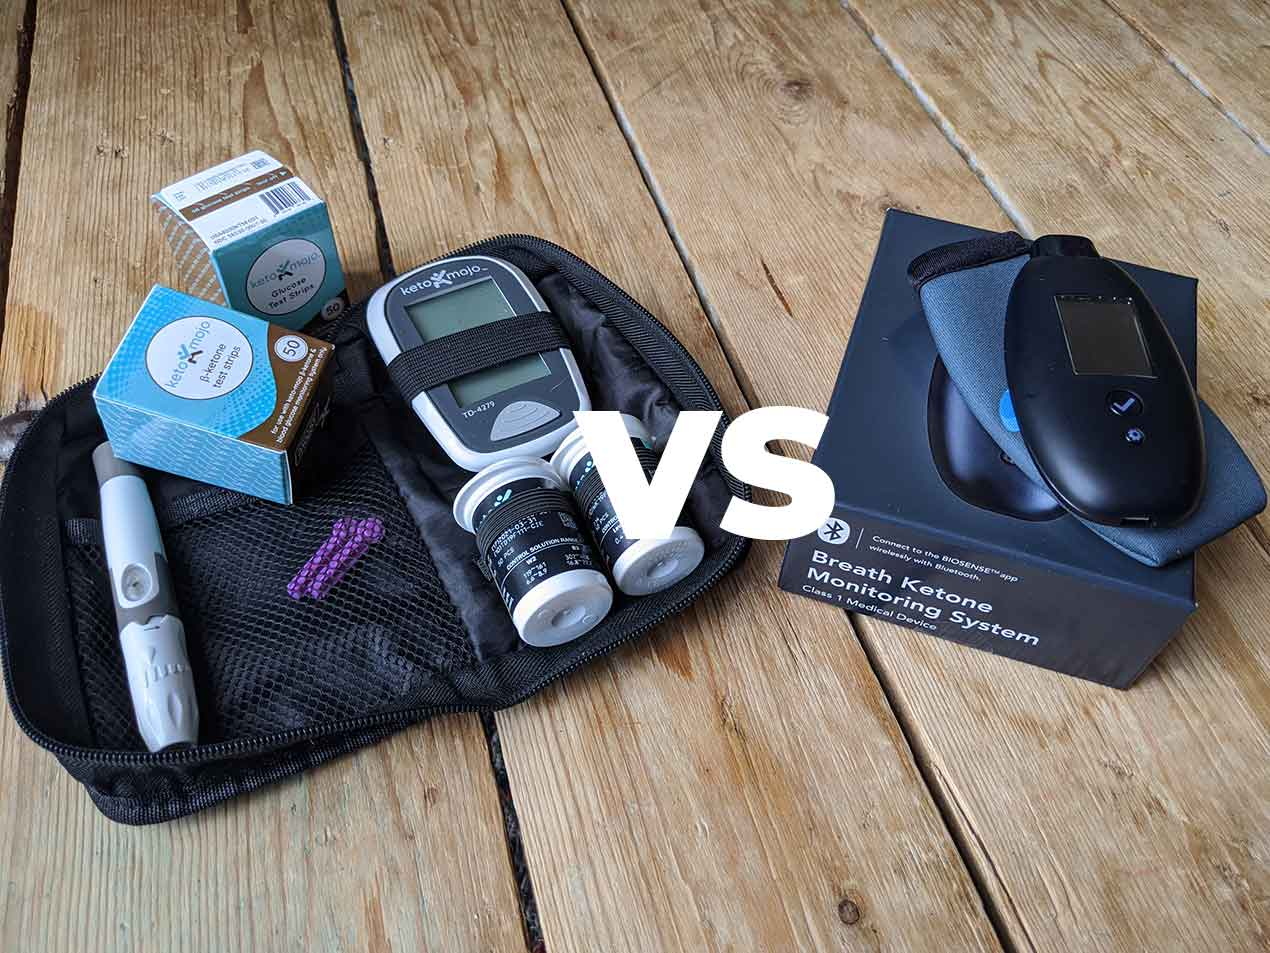 I had a chance to do a head to head test of the Keto Mojo blood ketone meter and the Biosense breath ketone meter during my recent 8-day water fast. O